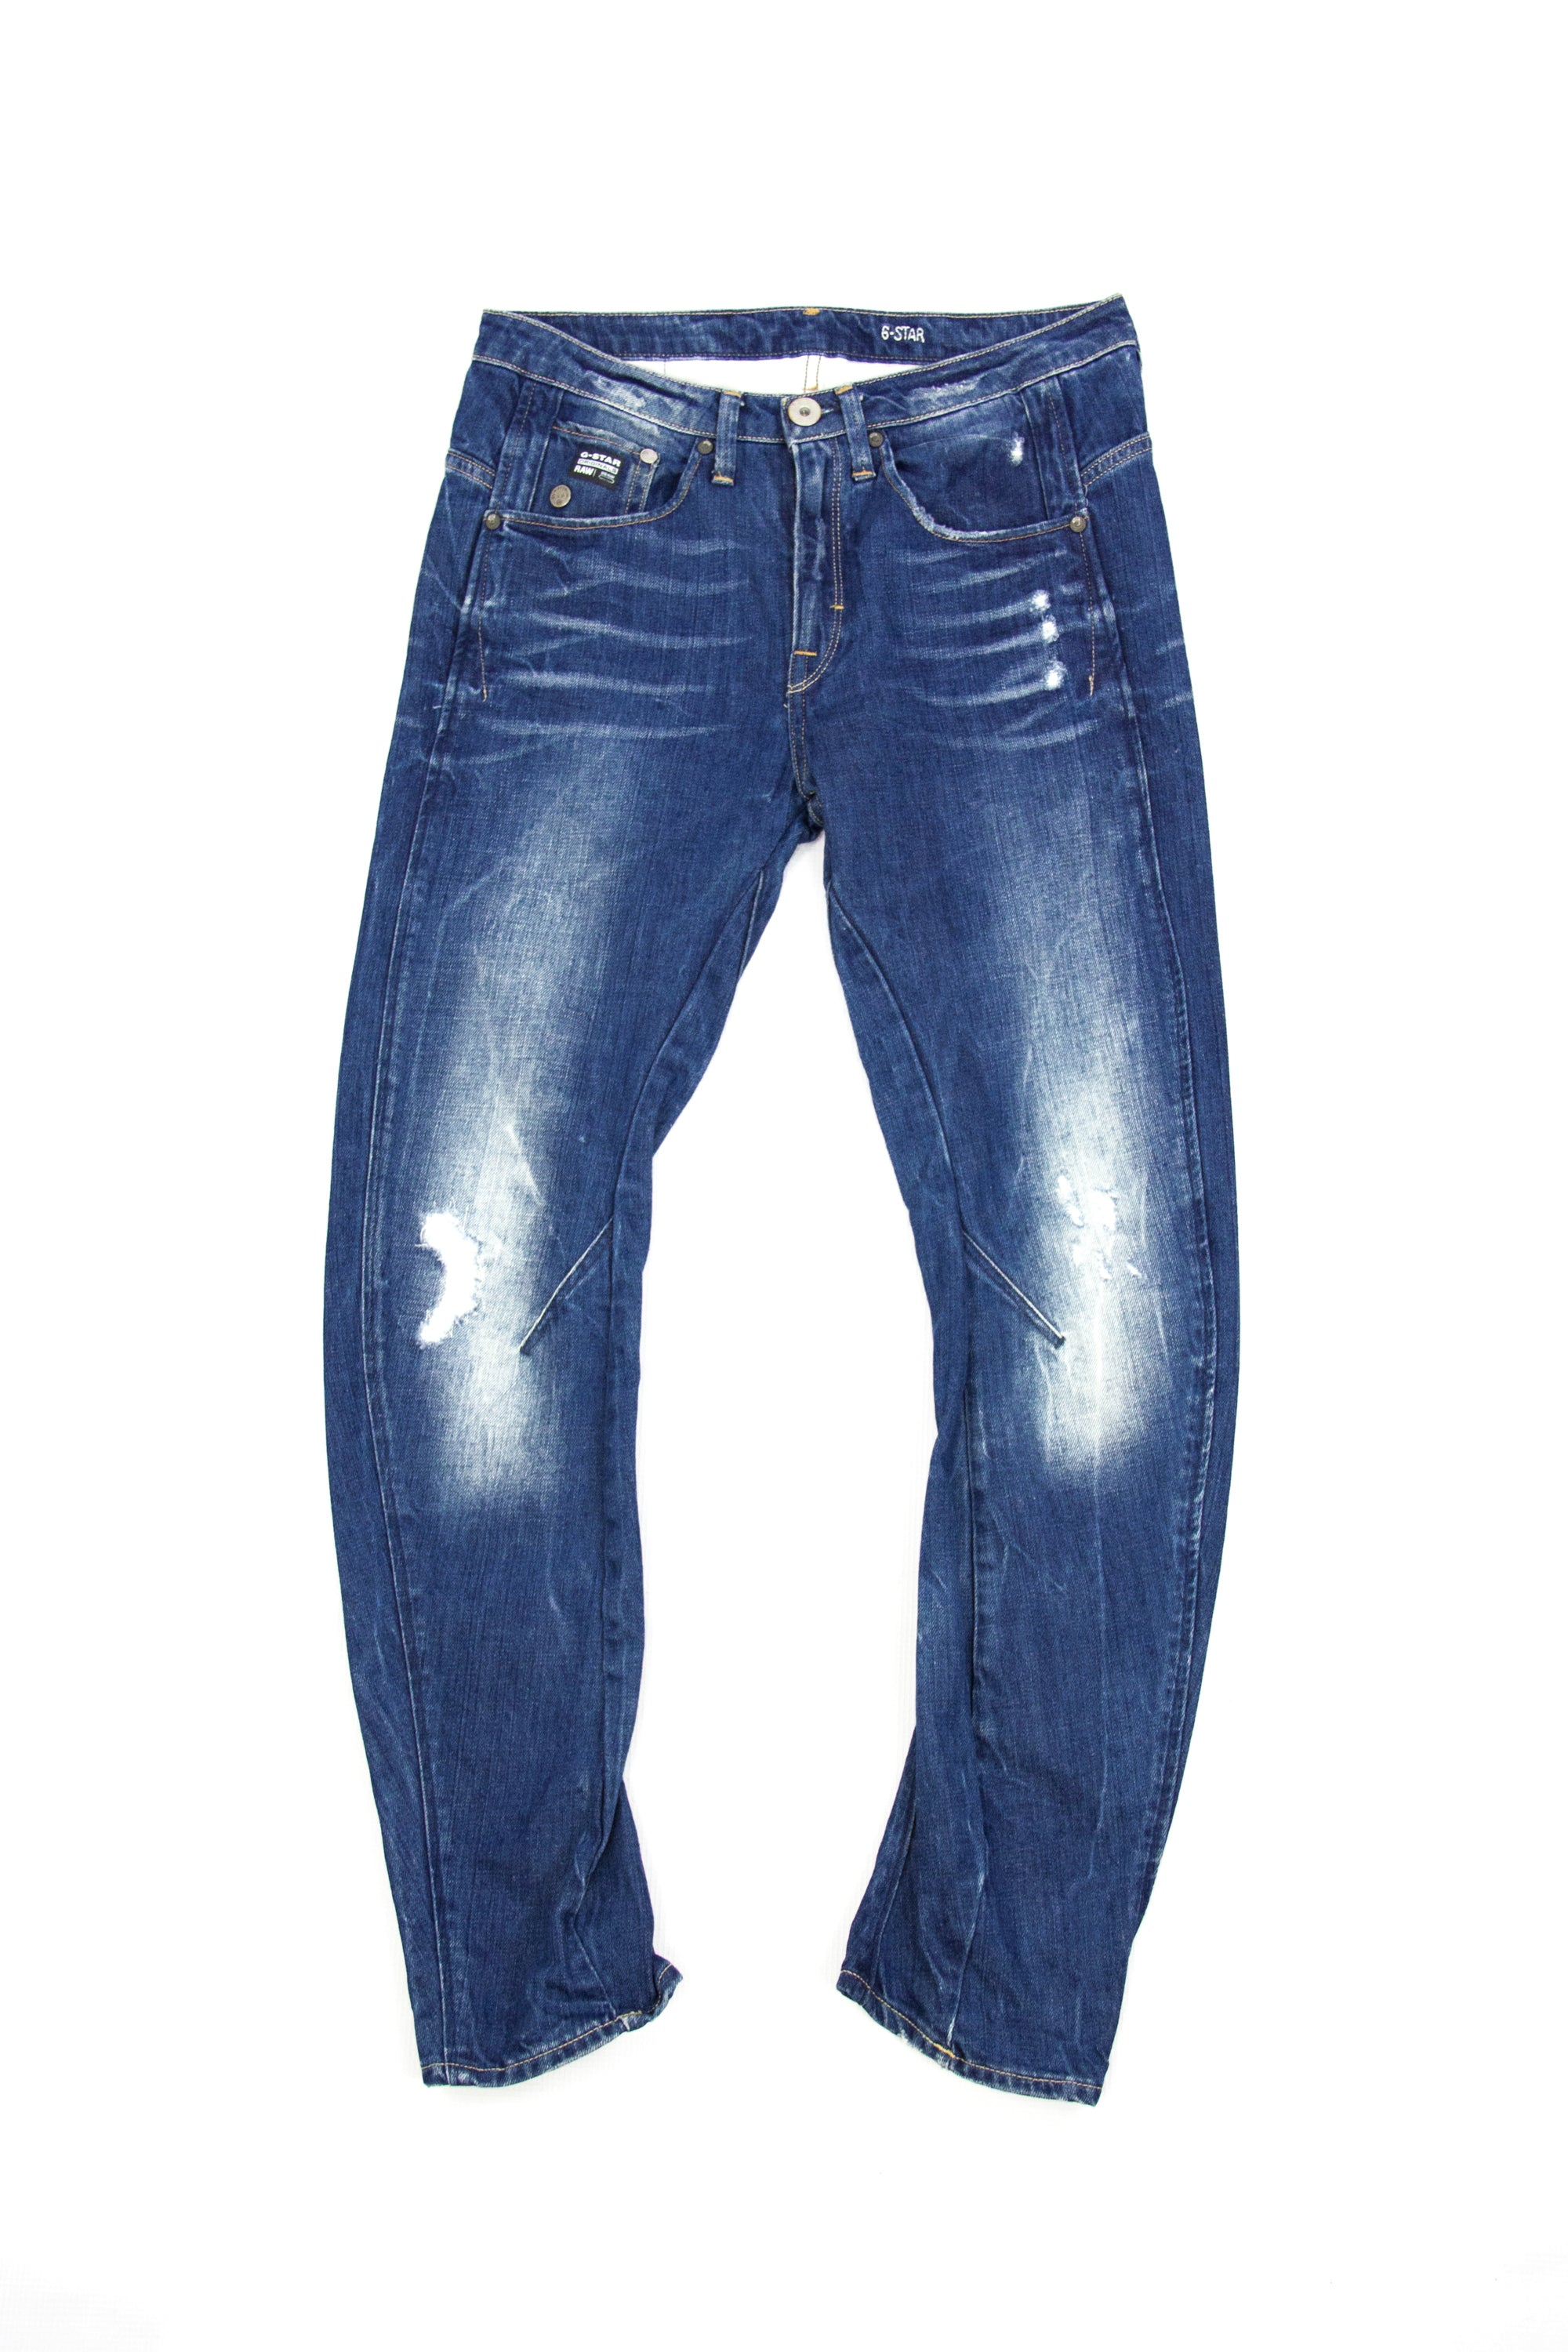 G-Star Raw Tapered Women's Blue Jeans Size 25/32 - secondfirst